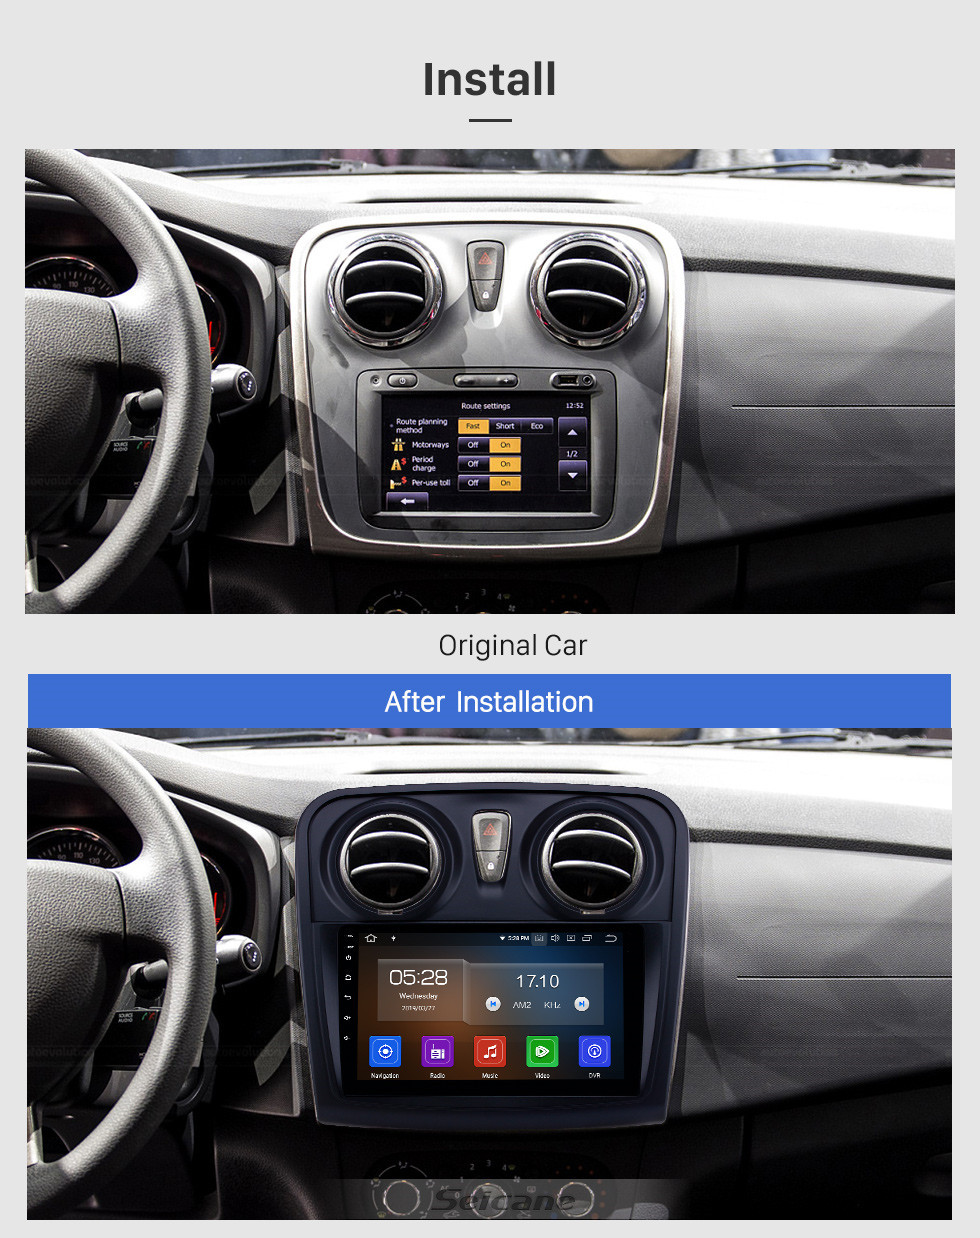 Seicane OEM 9 inch Android 10.0 Radio for 2012-2017 Renault Dacia Sandero Bluetooth HD Touchscreen GPS Navigation Carplay support Rear camera